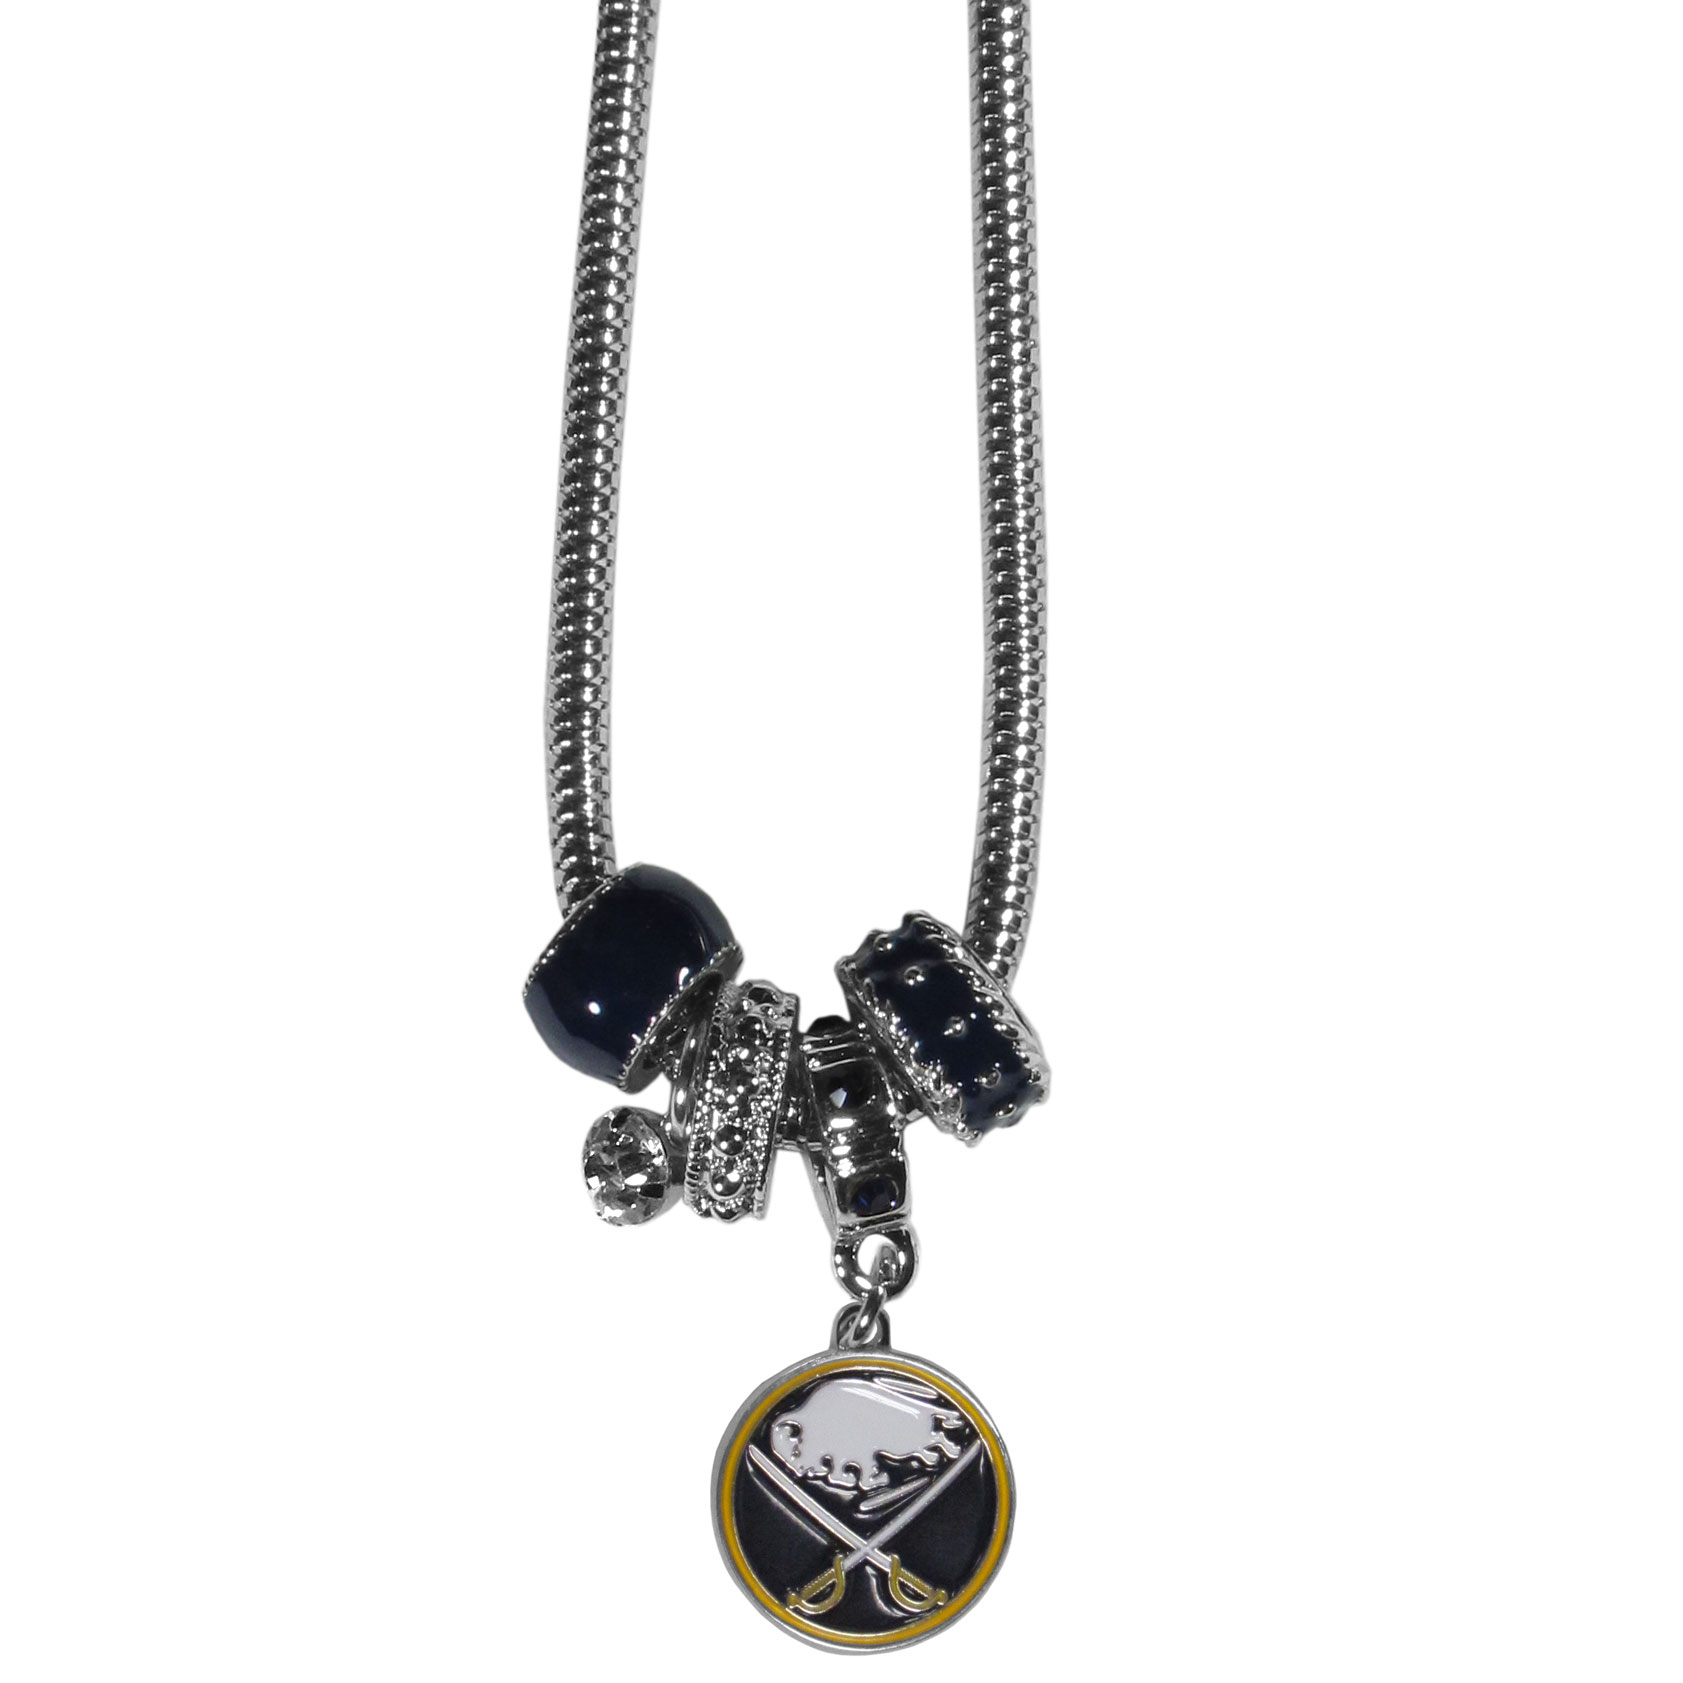 Buffalo Sabres® Euro Bead Necklace - We have combined the wildly popular Euro style beads with your favorite team to create our Buffalo Sabres® bead necklace. The 18 inch snake chain features 4 Euro beads with enameled team colors and rhinestone accents with a high polish, nickel free charm and rhinestone charm. Perfect way to show off your team pride.